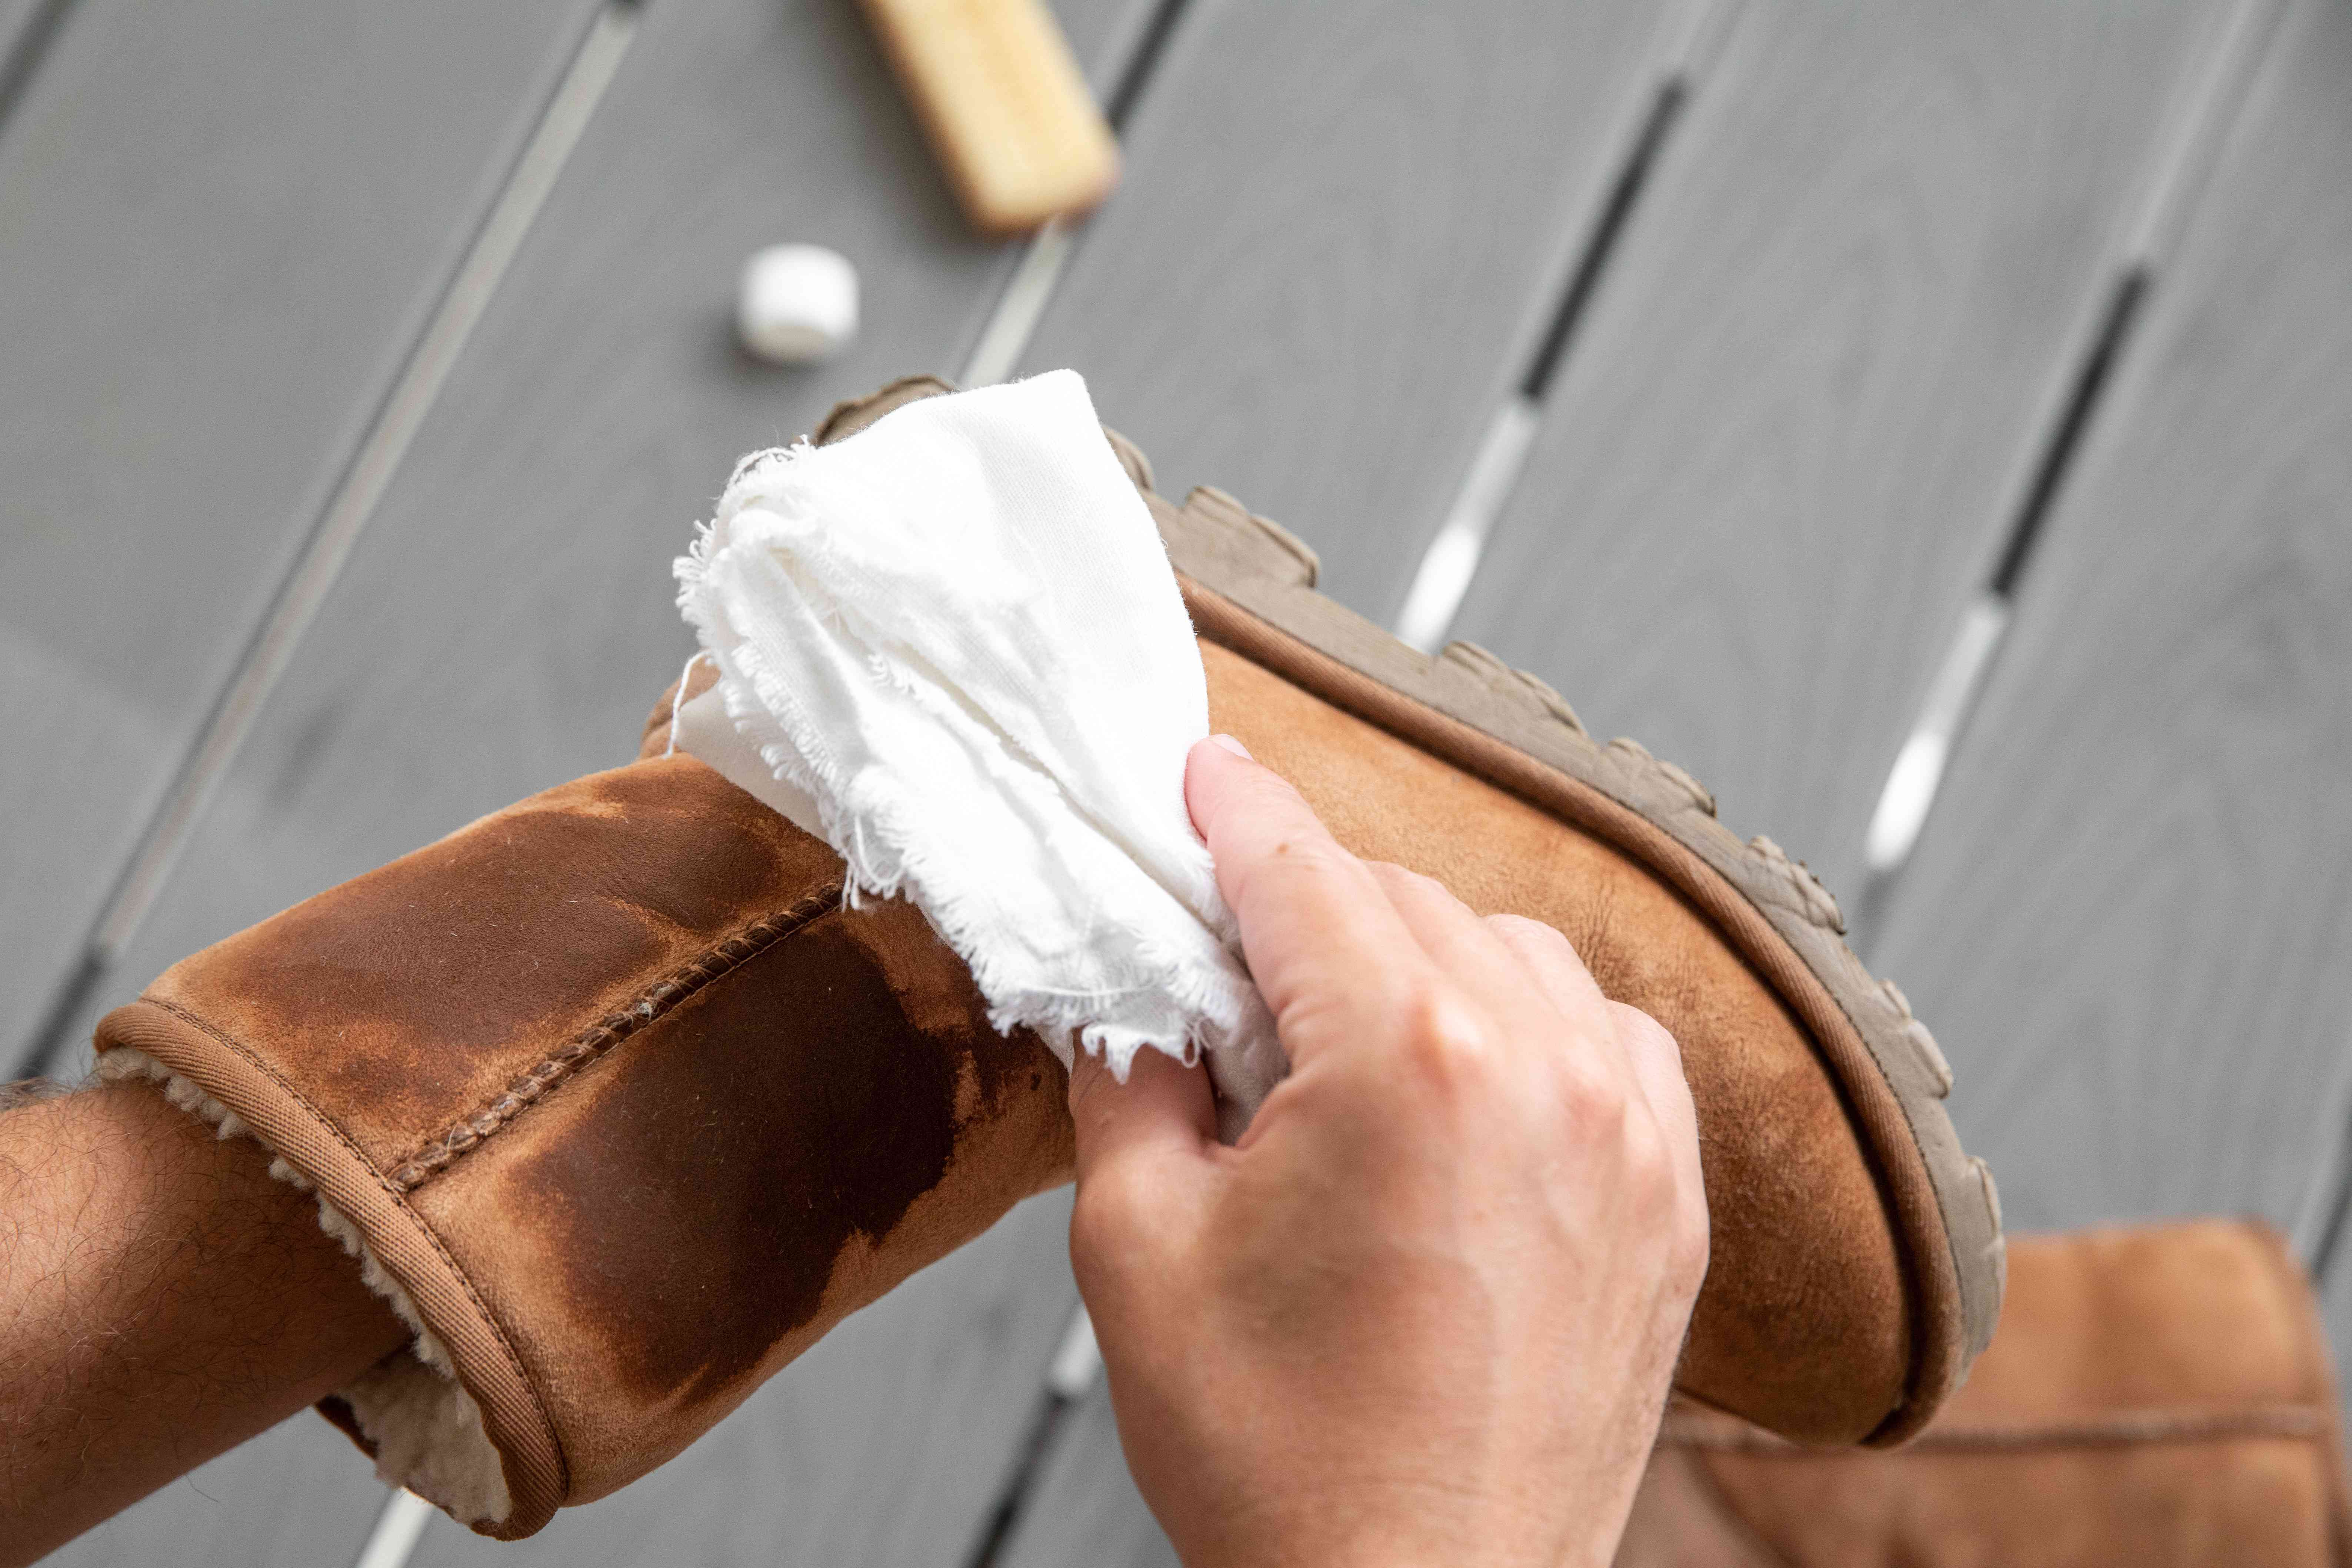 Someone wiping down Ugg boots with a damp cloth